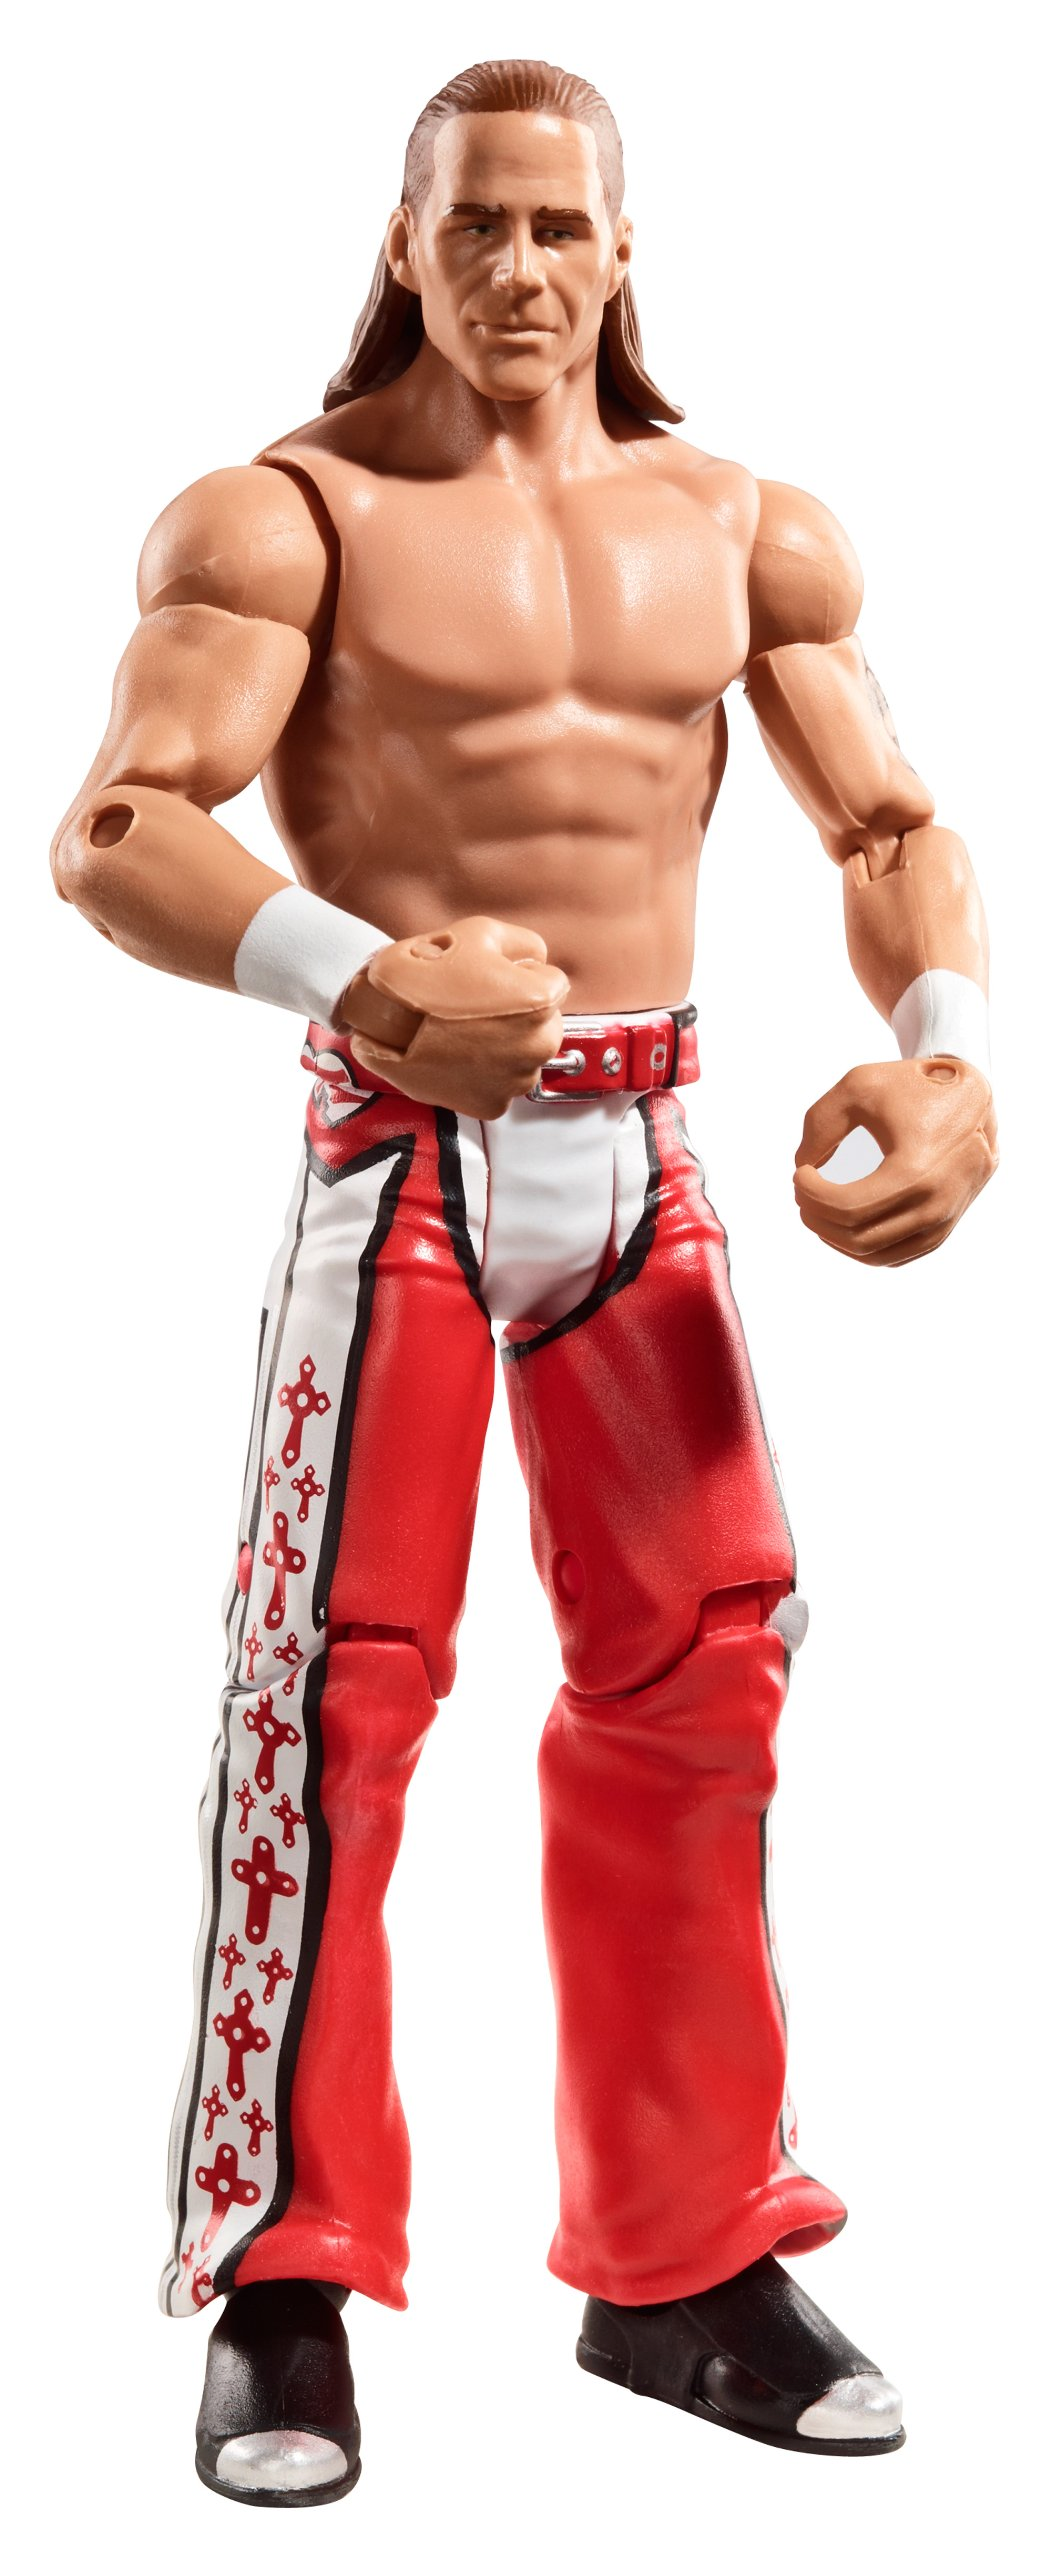 WWE Shawn Michaels Wrestle Mania Heritage Figure - Series #26 by WWE